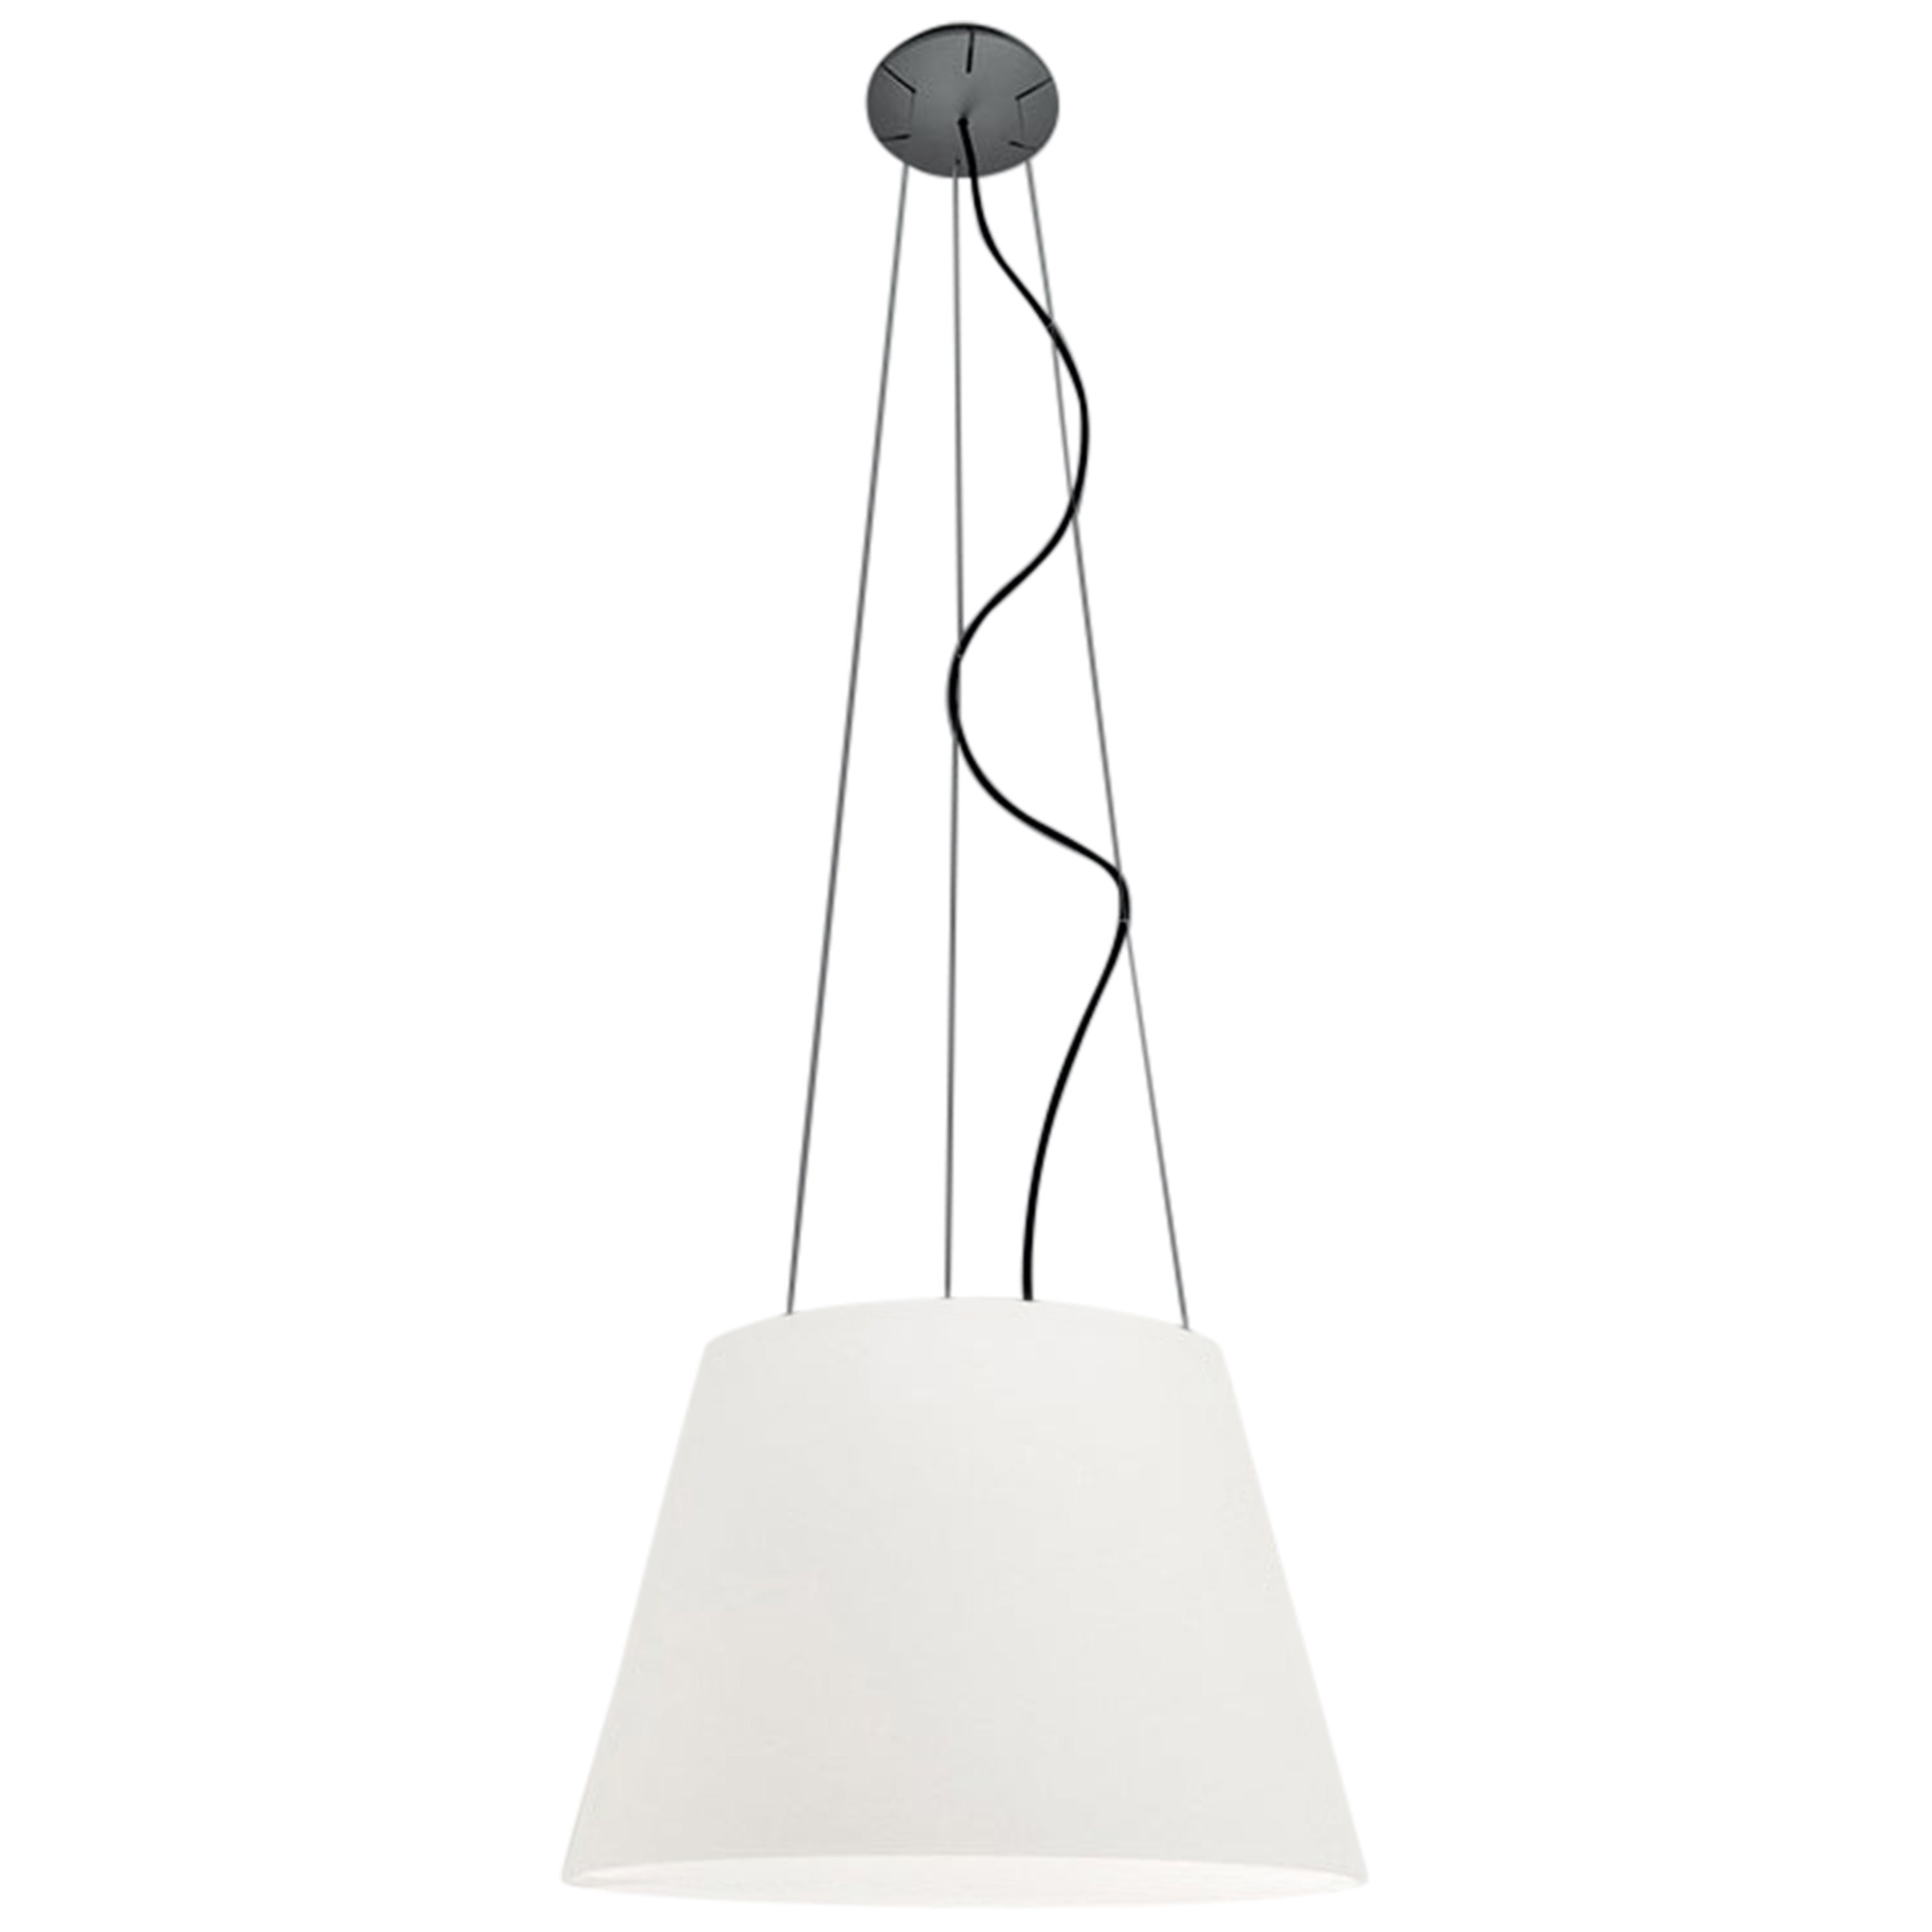 Artemide Tolomeo Mega Outdoor Suspension Lamp in White by De Lucchi, Fassina